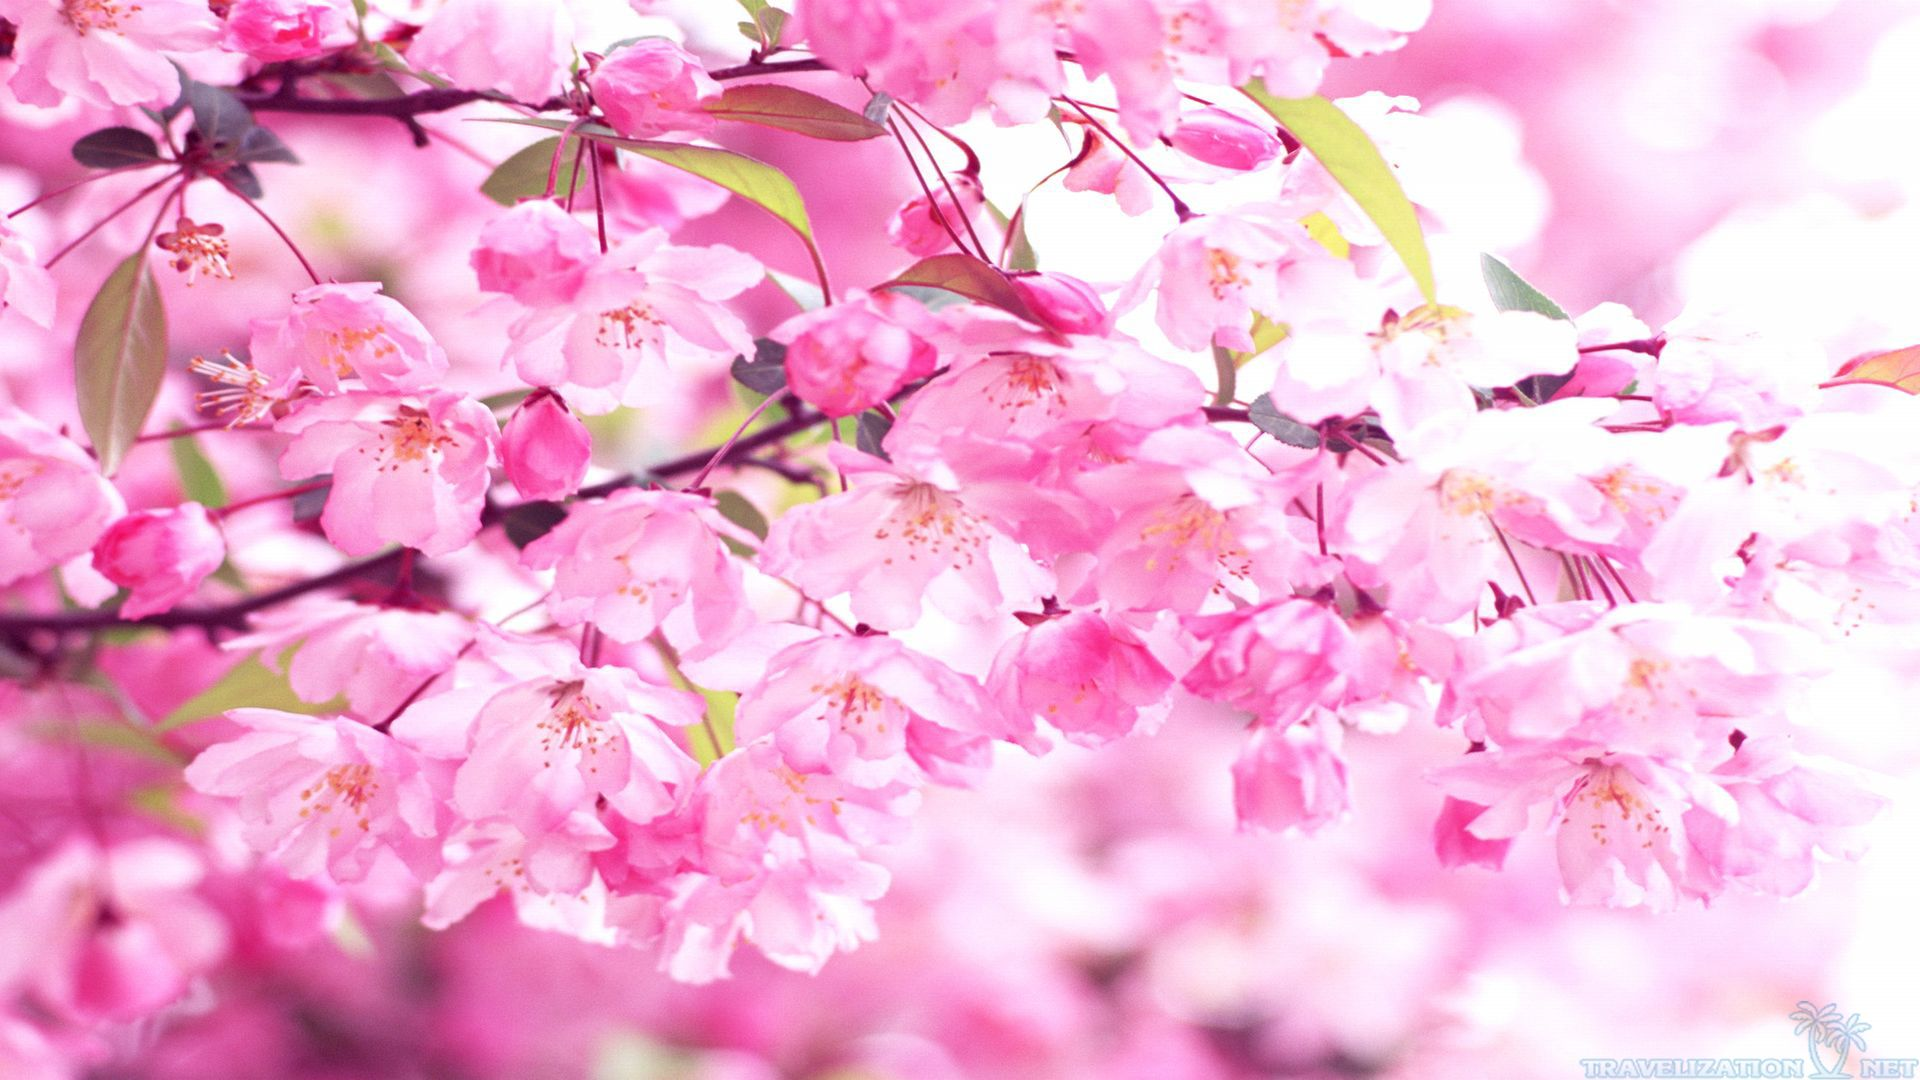 Pink Cherry Blossom Wallpaper - WallpaperSafari